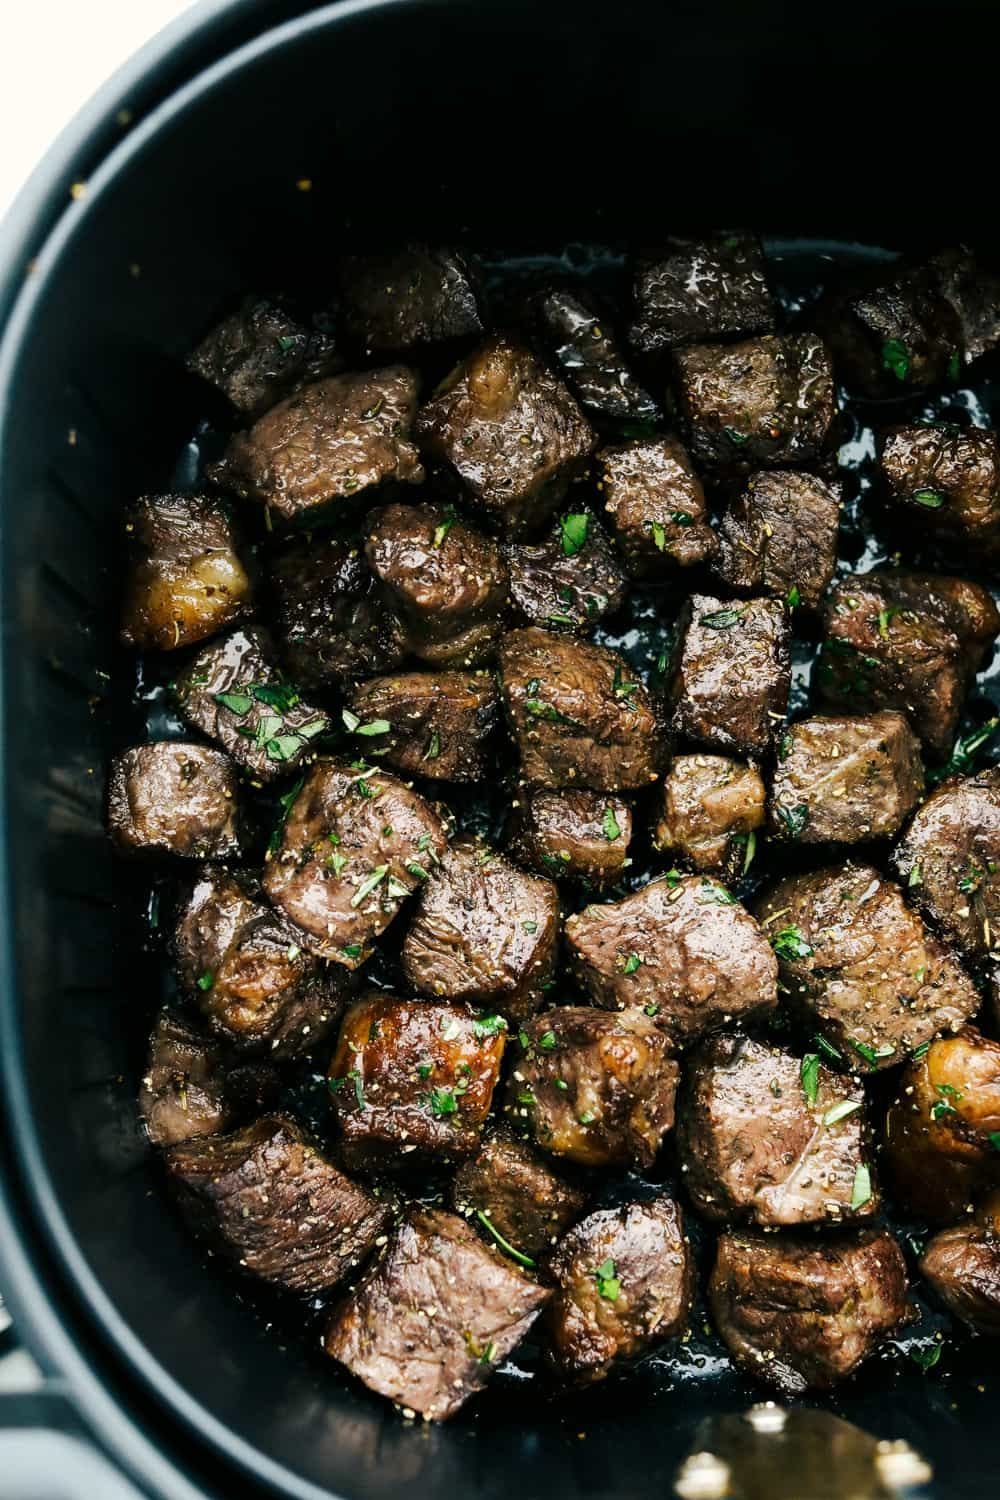 Perfectly seasoned, tender juicy steak bites in the air fryer.